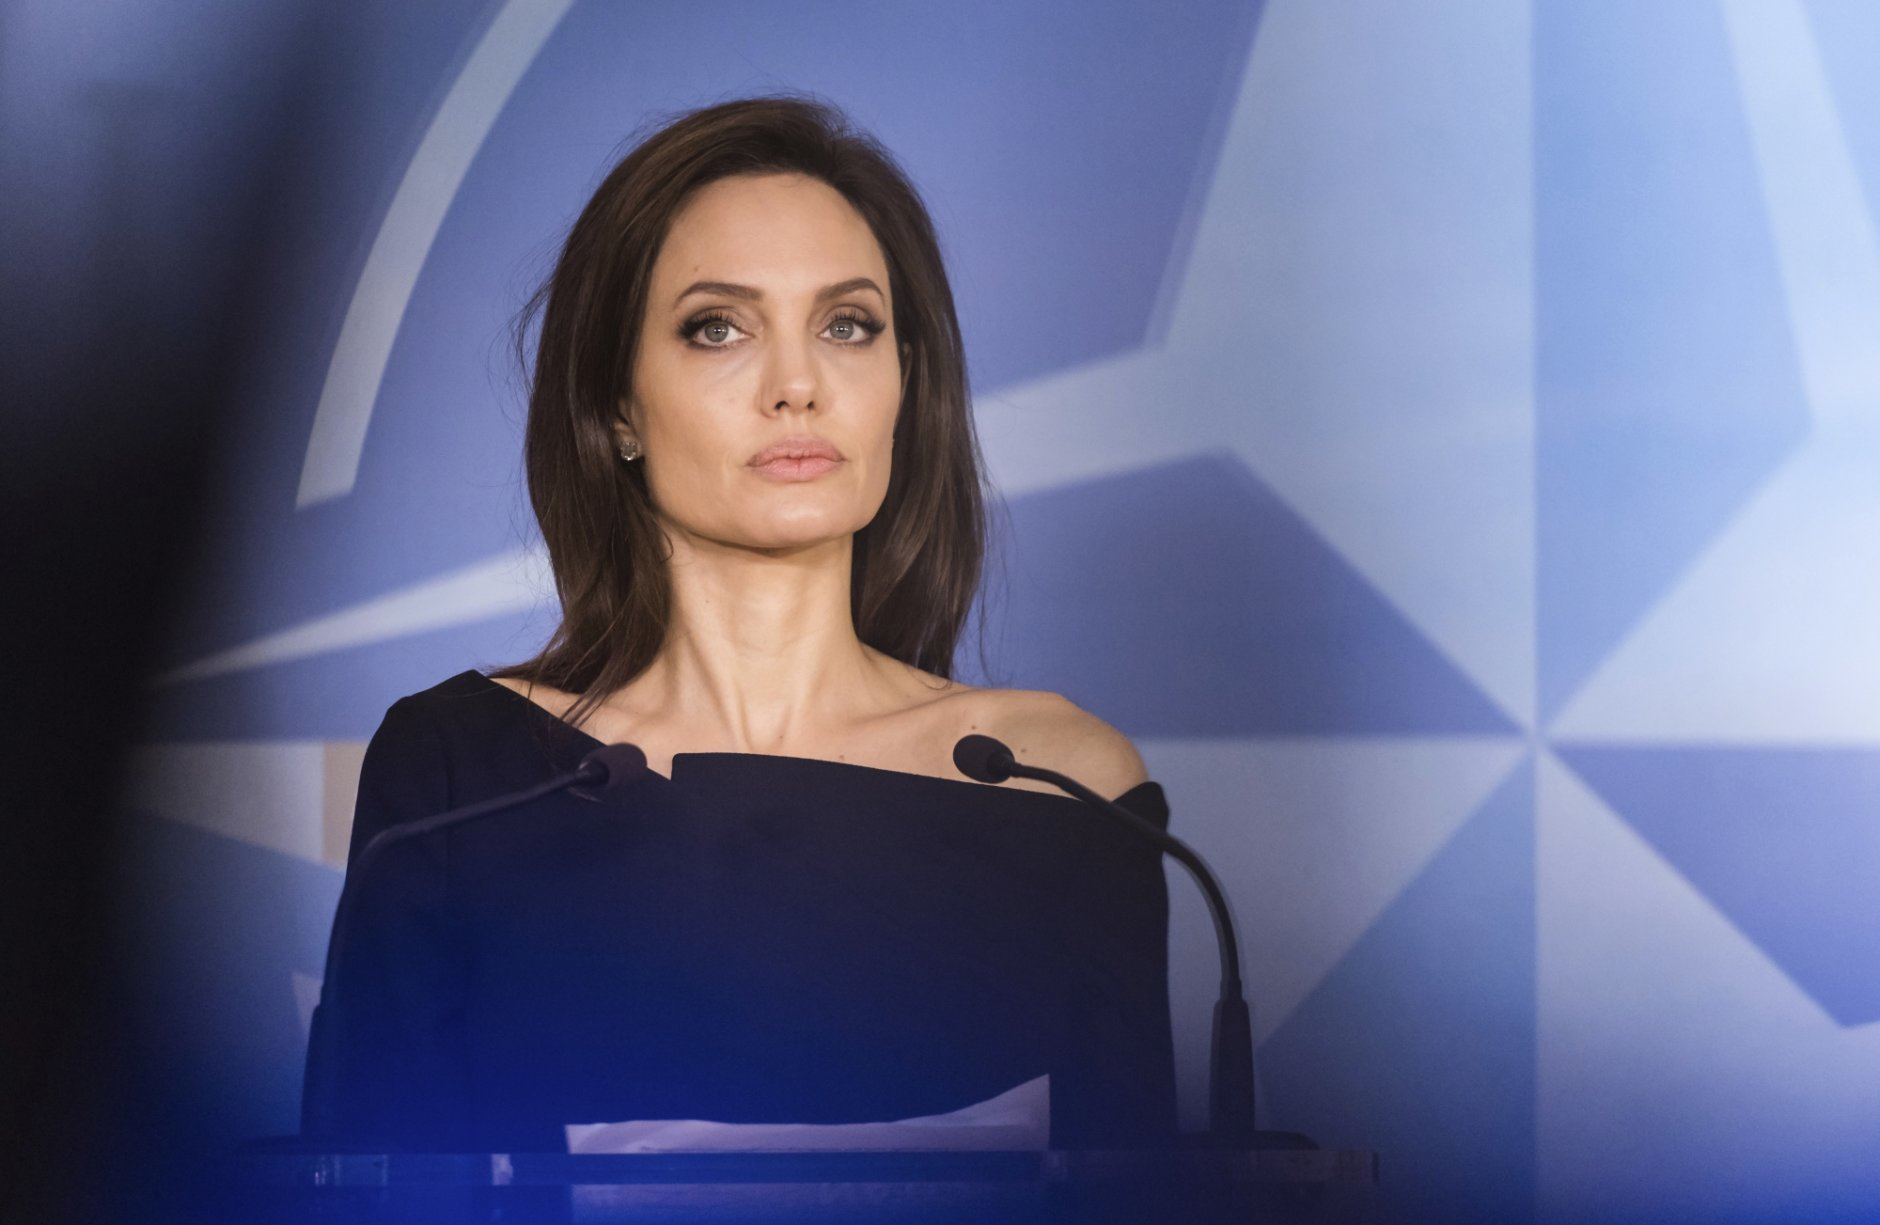 FILE - In this file photo dated Wednesday, Jan. 31, 2018, Special Envoy for the United Nations High Commissioner for Refugees Angelina Jolie addresses the media at NATO headquarters in Brussels.  American actress Jolie has not ruled out a move into politics, during an interview on BBC radio Friday Dec. 28, 2018, and has joked that she might be tough enough to take the rough and tumble that comes with it. (AP Photo/Geert Vanden Wijngaert, FILE)